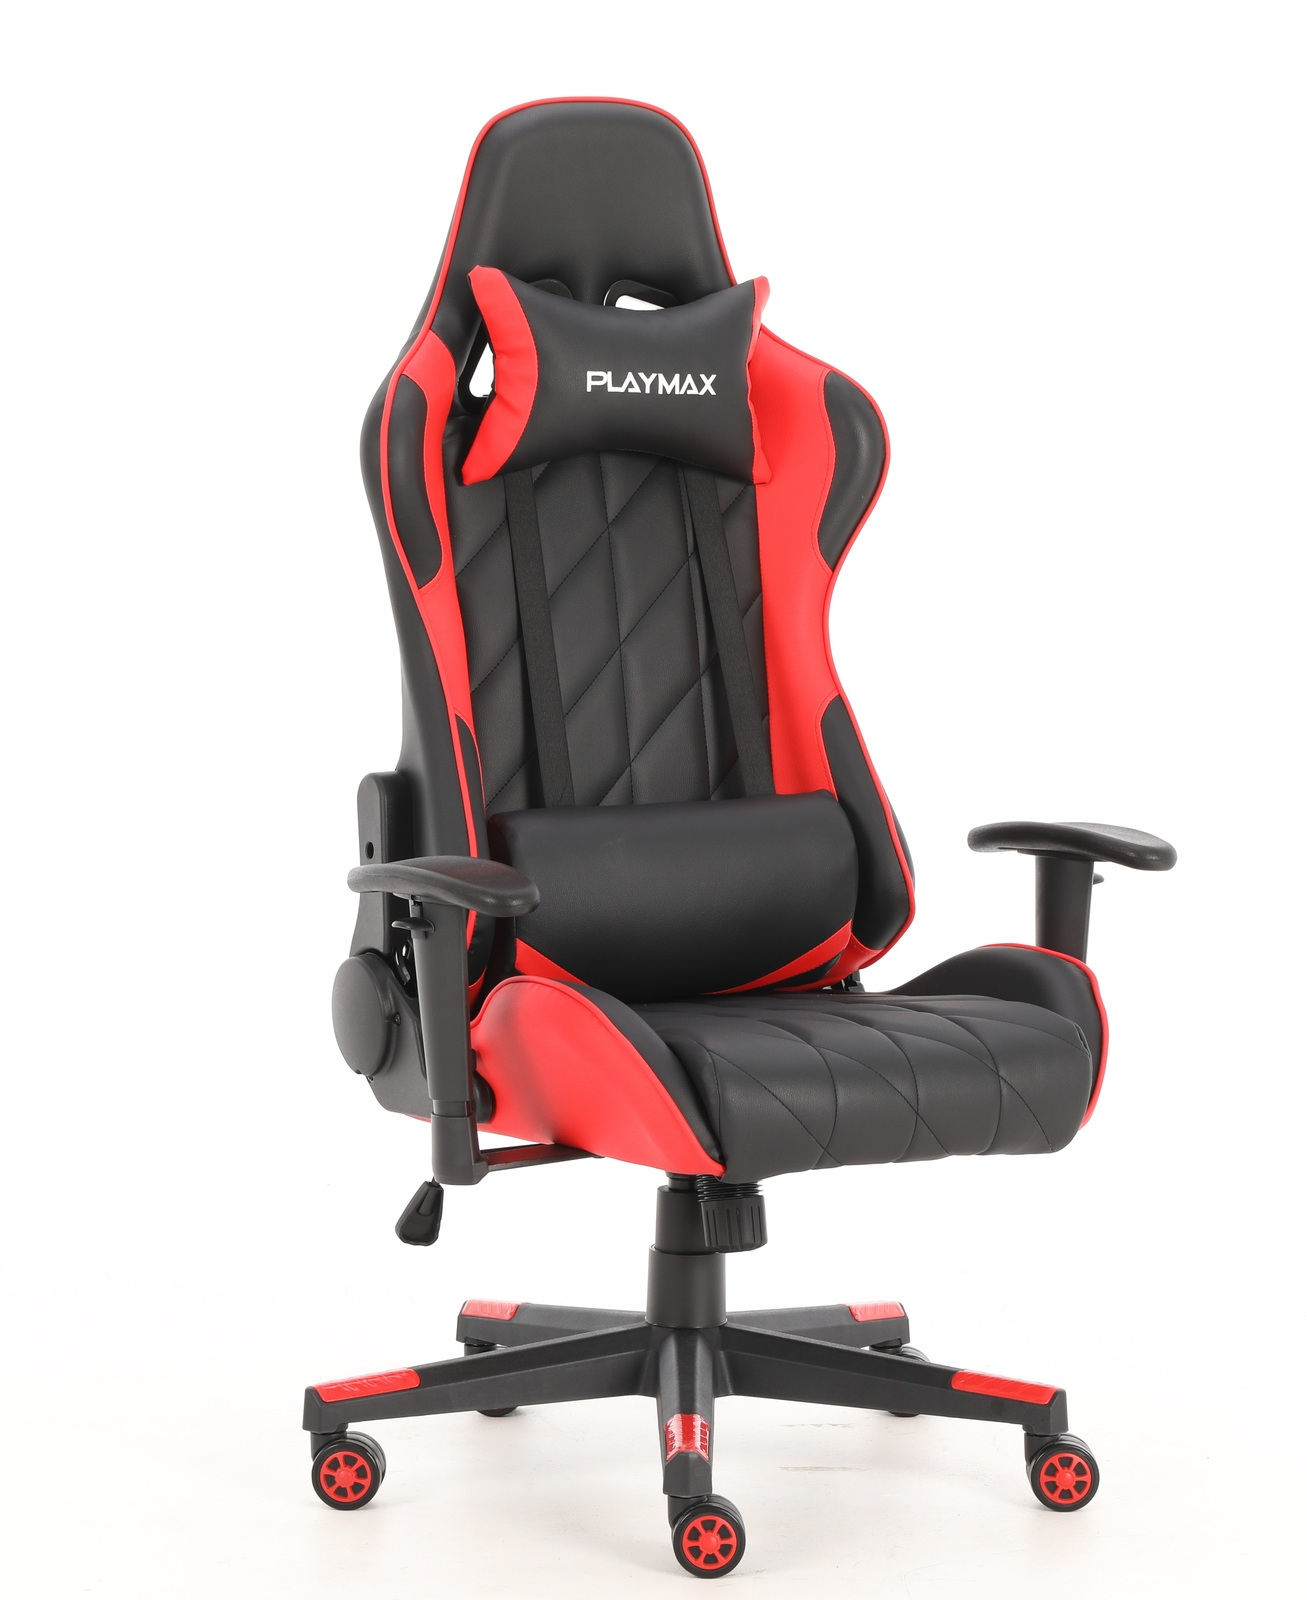 Playmax Elite Gaming Chair - Red and Black for  image